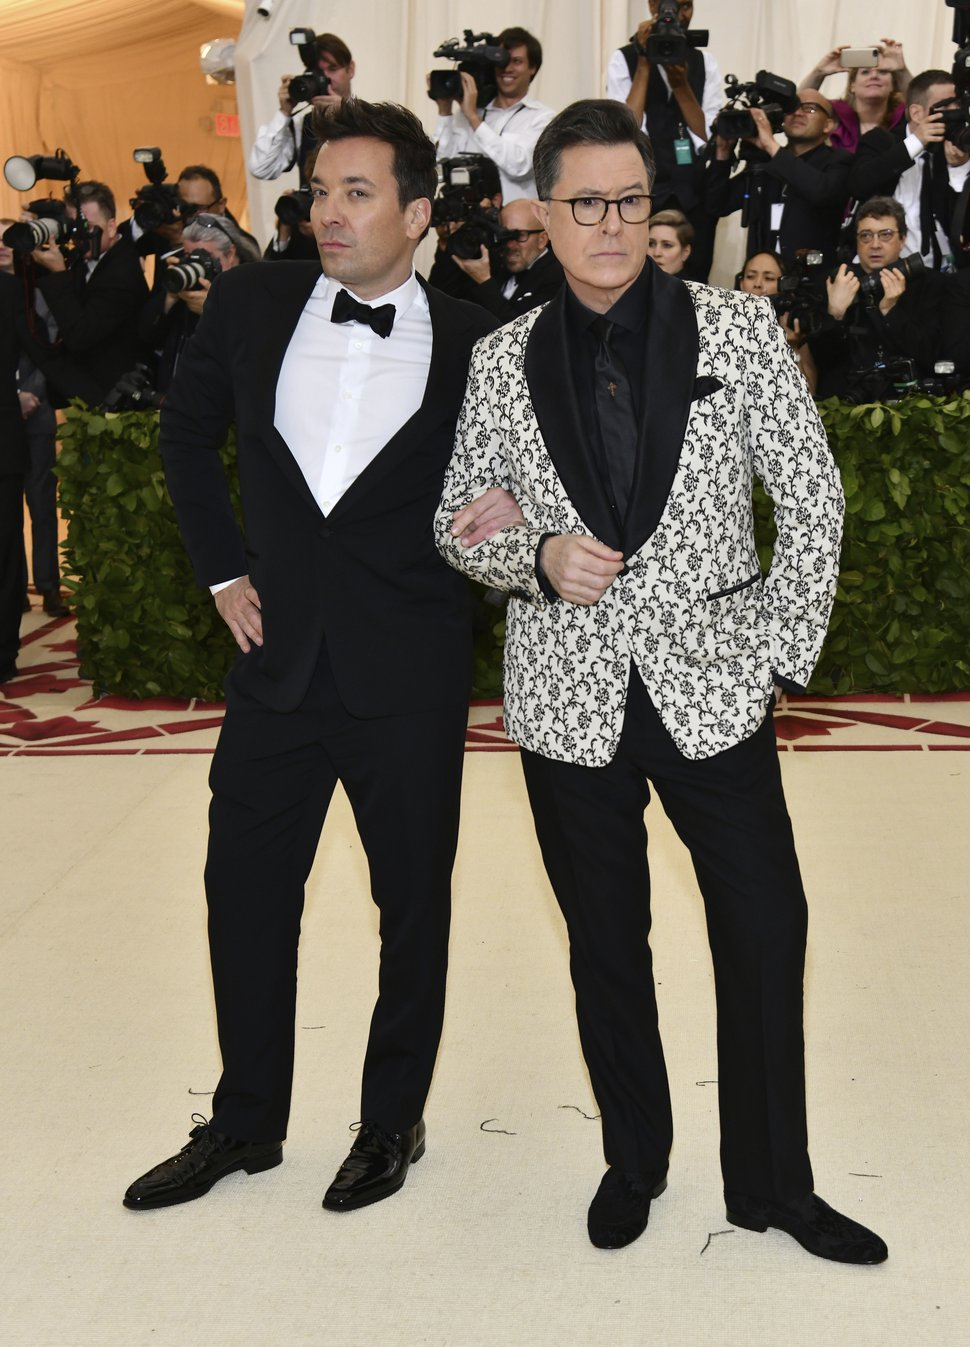 Jimmy Fallon, left, and Stephen Colbert attend The Metropolitan Museum of Art's Costume Institute benefit gala celebrating the opening of the Heavenly Bodies: Fashion and the Catholic Imagination exhibition on Monday, May 7, 2018, in New York. (Photo by Charles Sykes/Invision/AP)